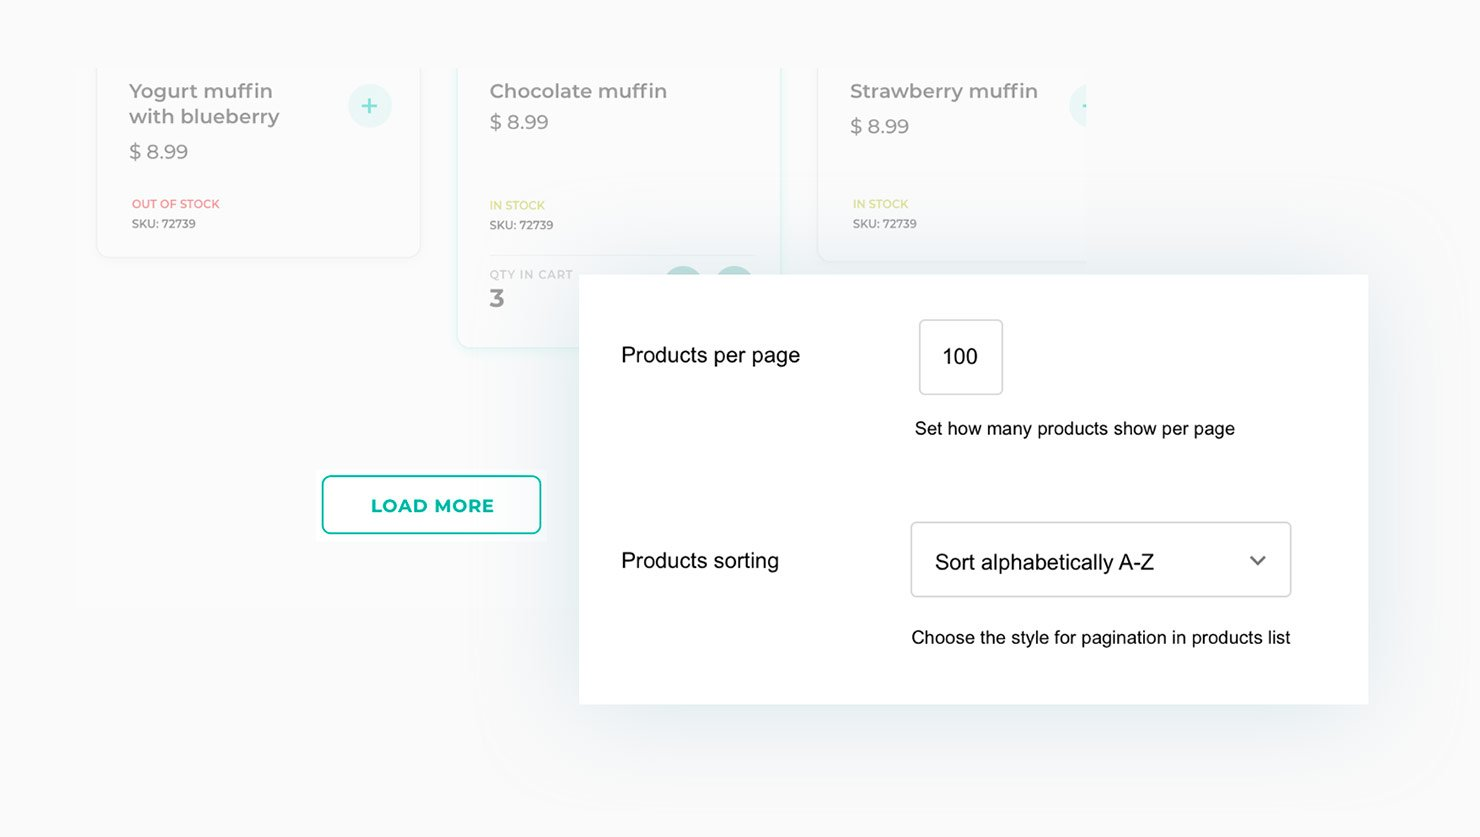 Products per page and sorting